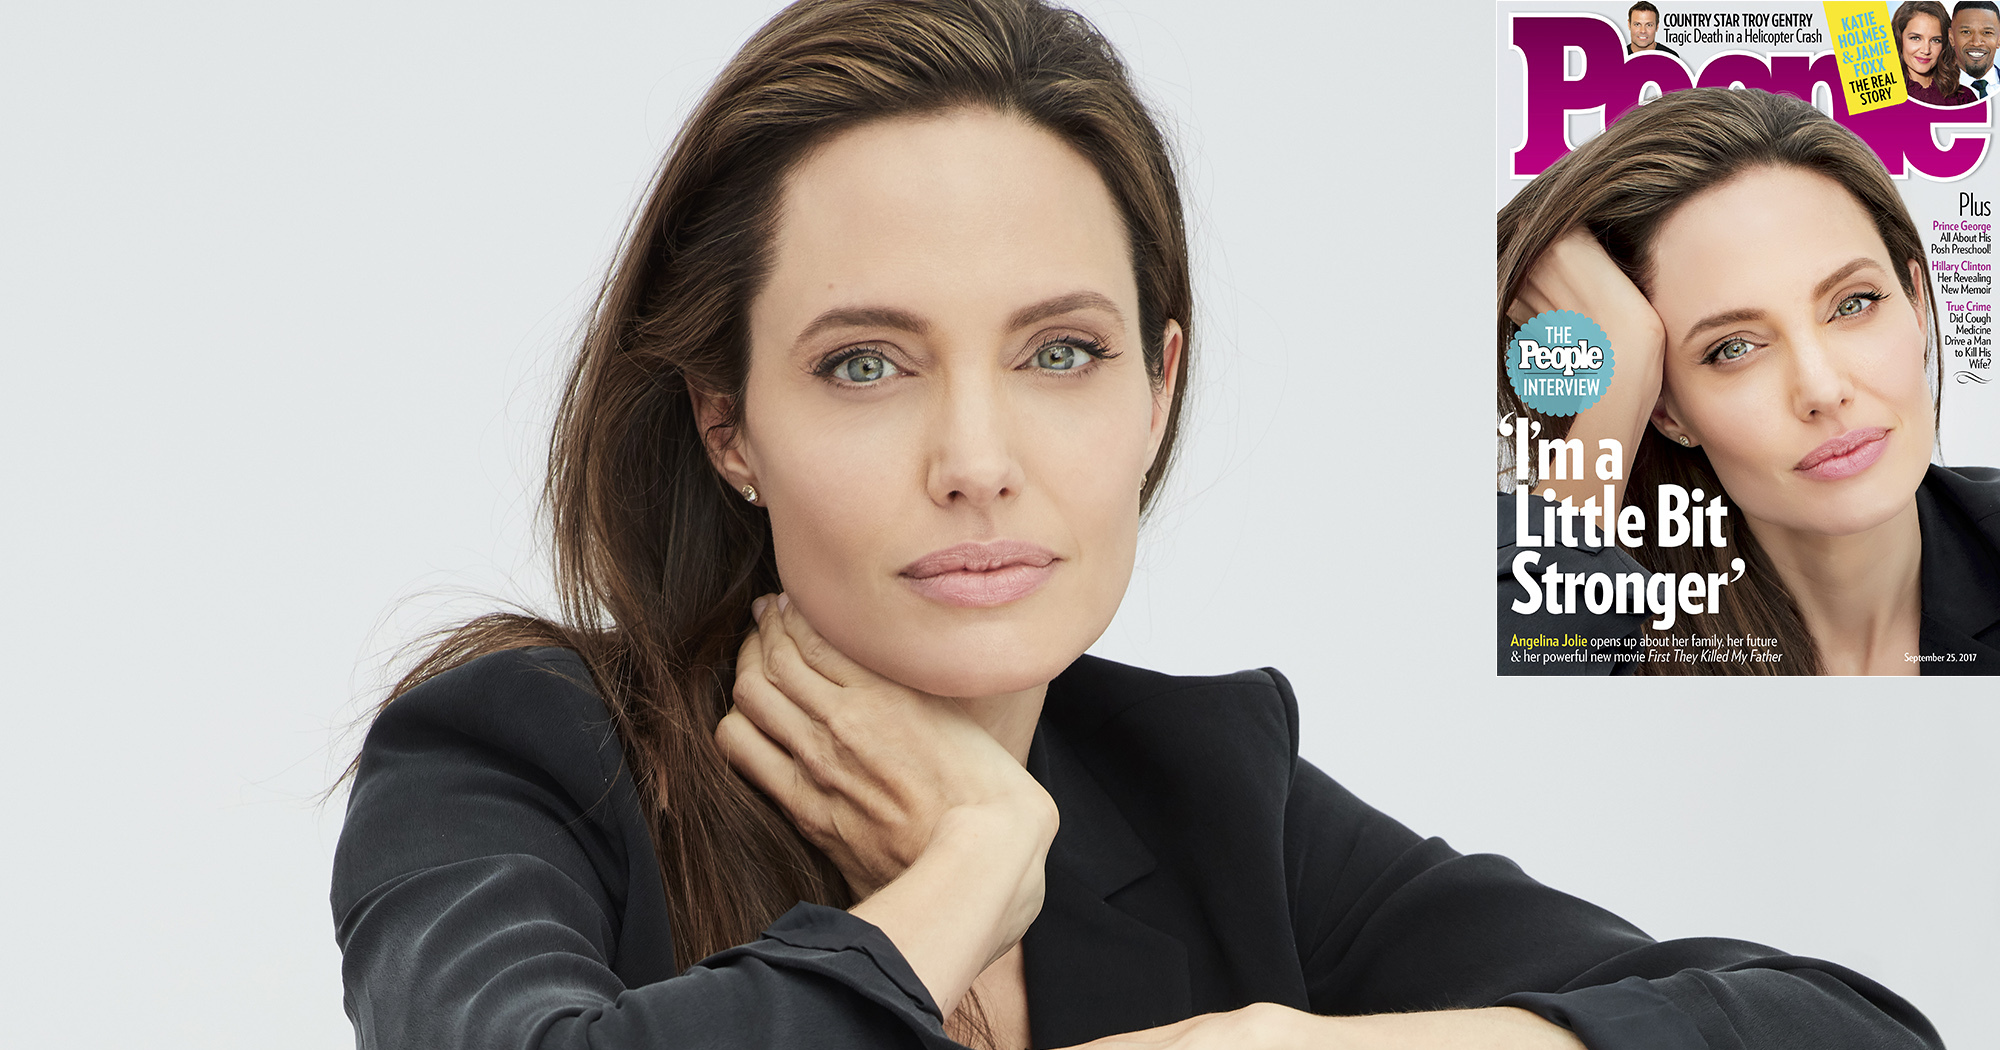 """Angelina Jolie Covers PEOPLE, Says: """"I Am a Little Bit STRONGER!"""" image"""